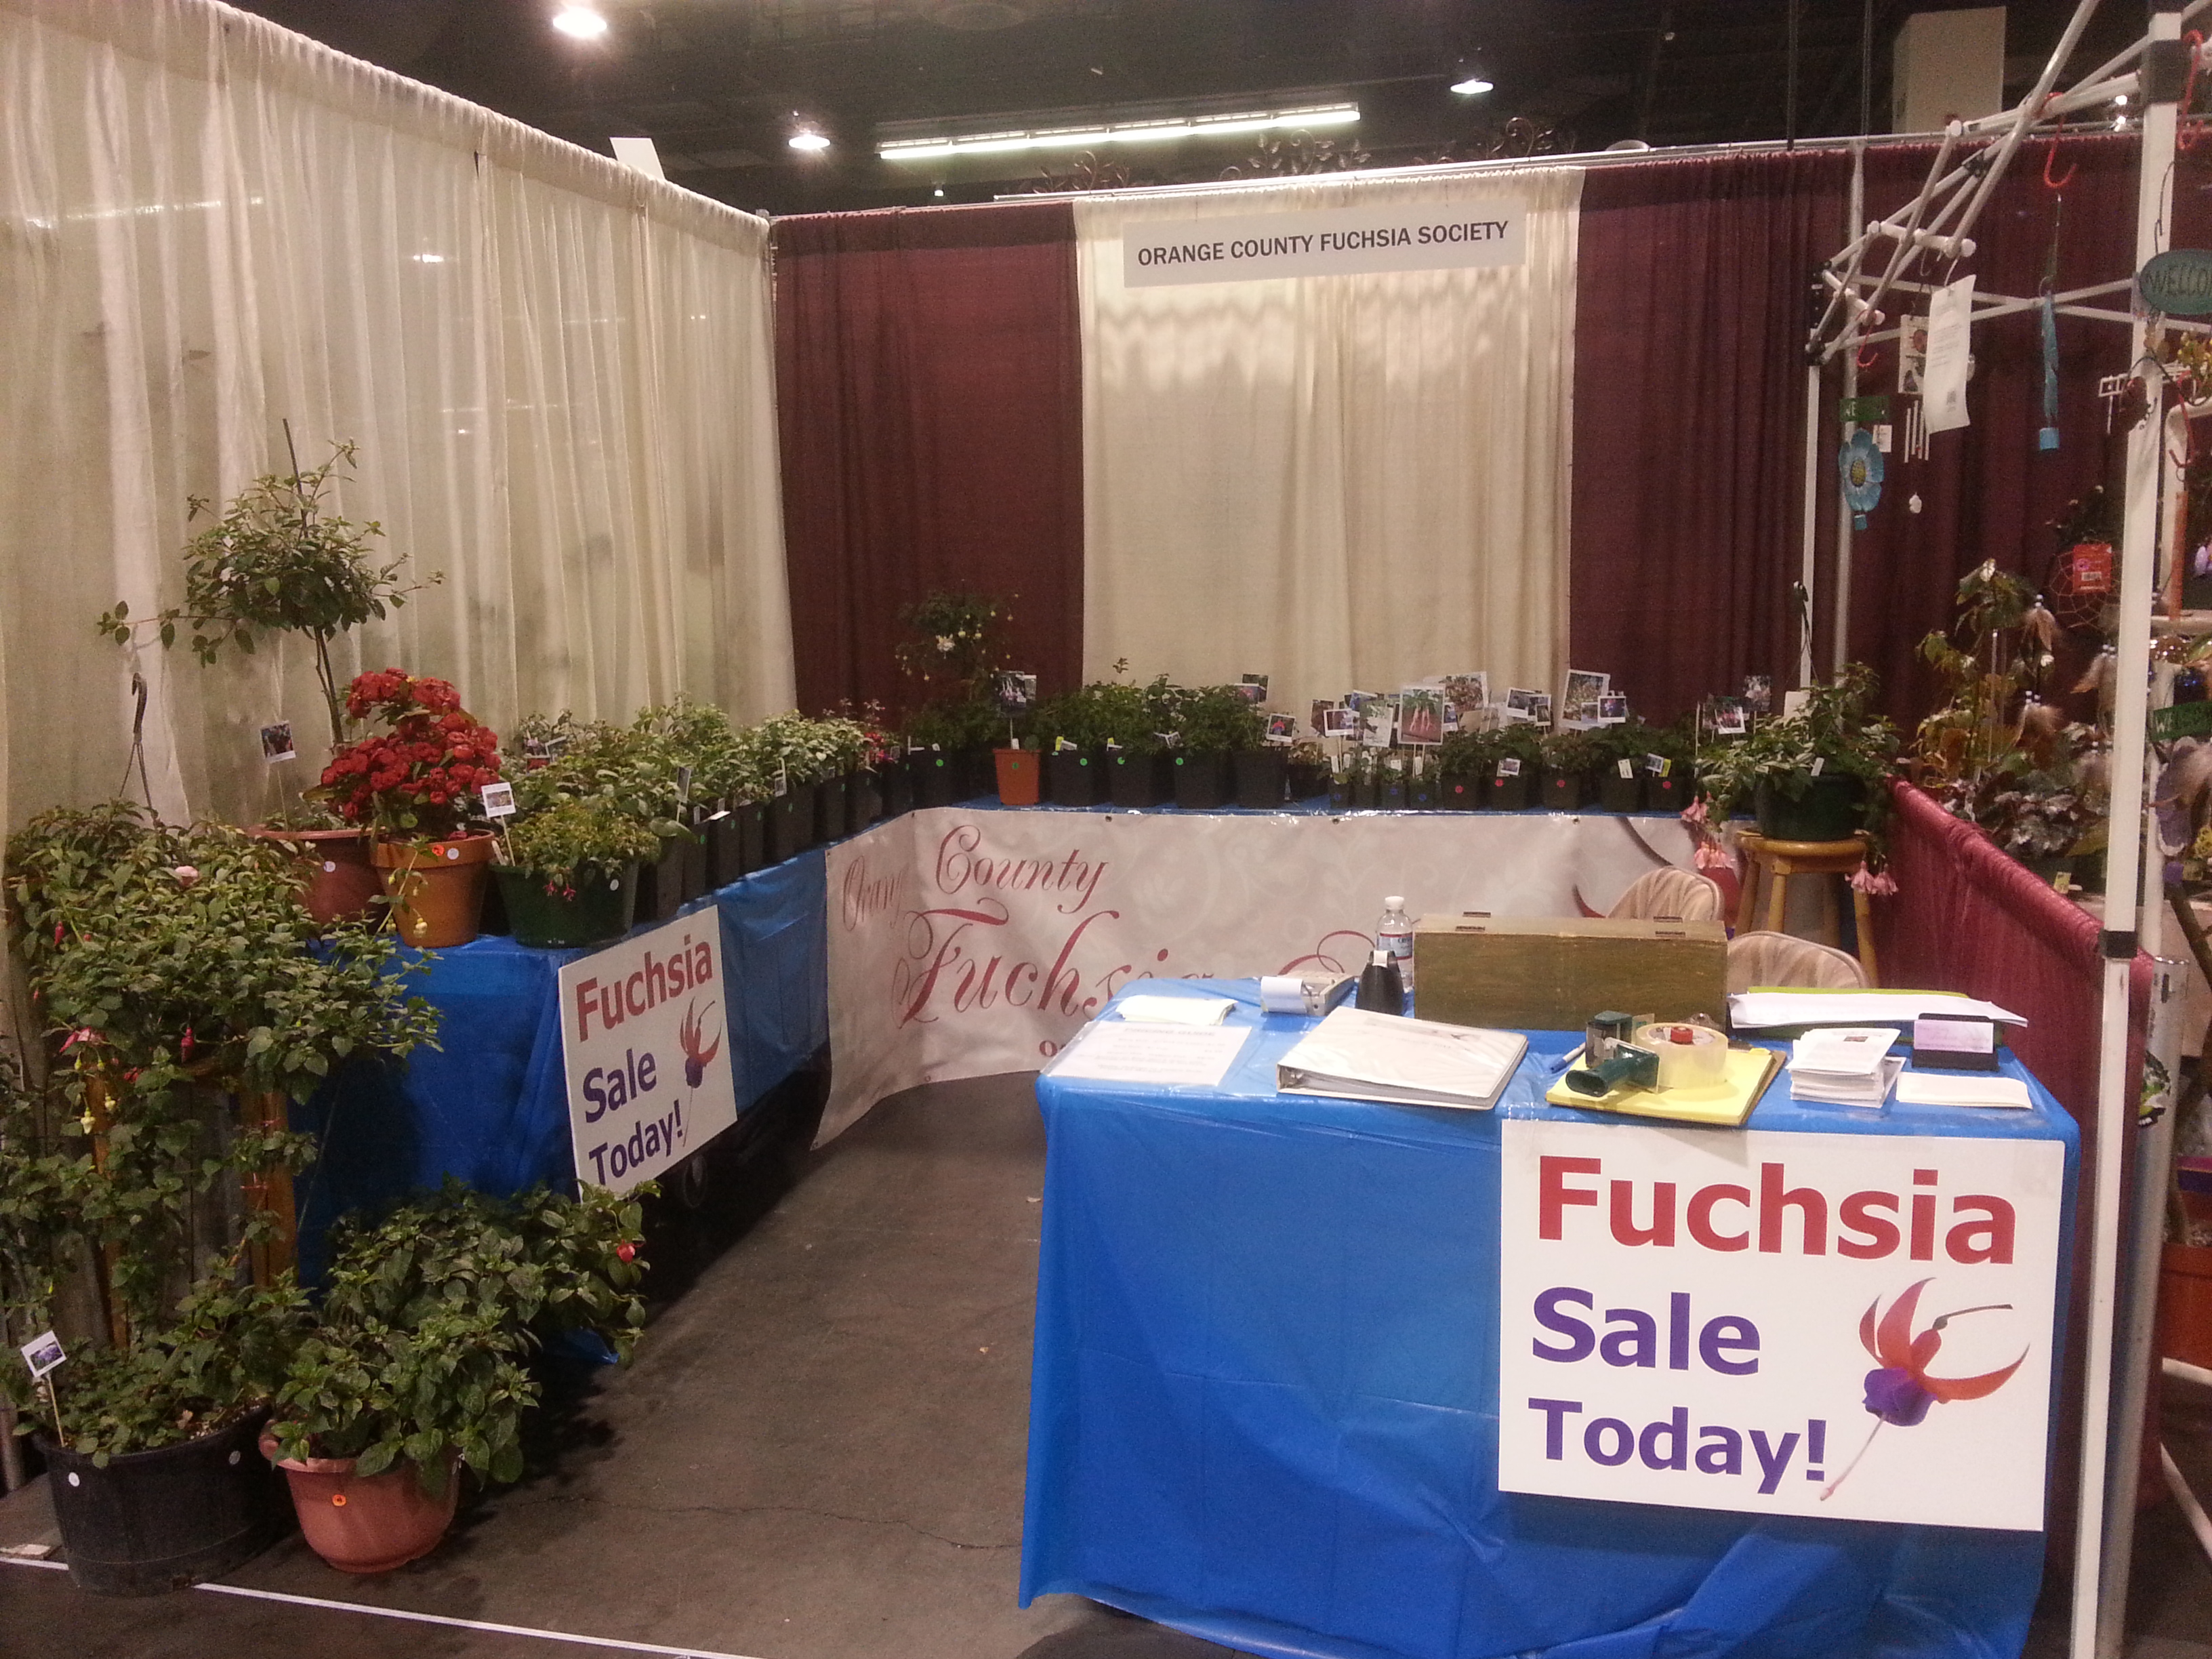 The Orange County Fuchsia Society Had, This Year For The First Time, A  Booth At The Anaheim Home And Garden Show At The Anaheim Convention Center  On May 3 5 ...